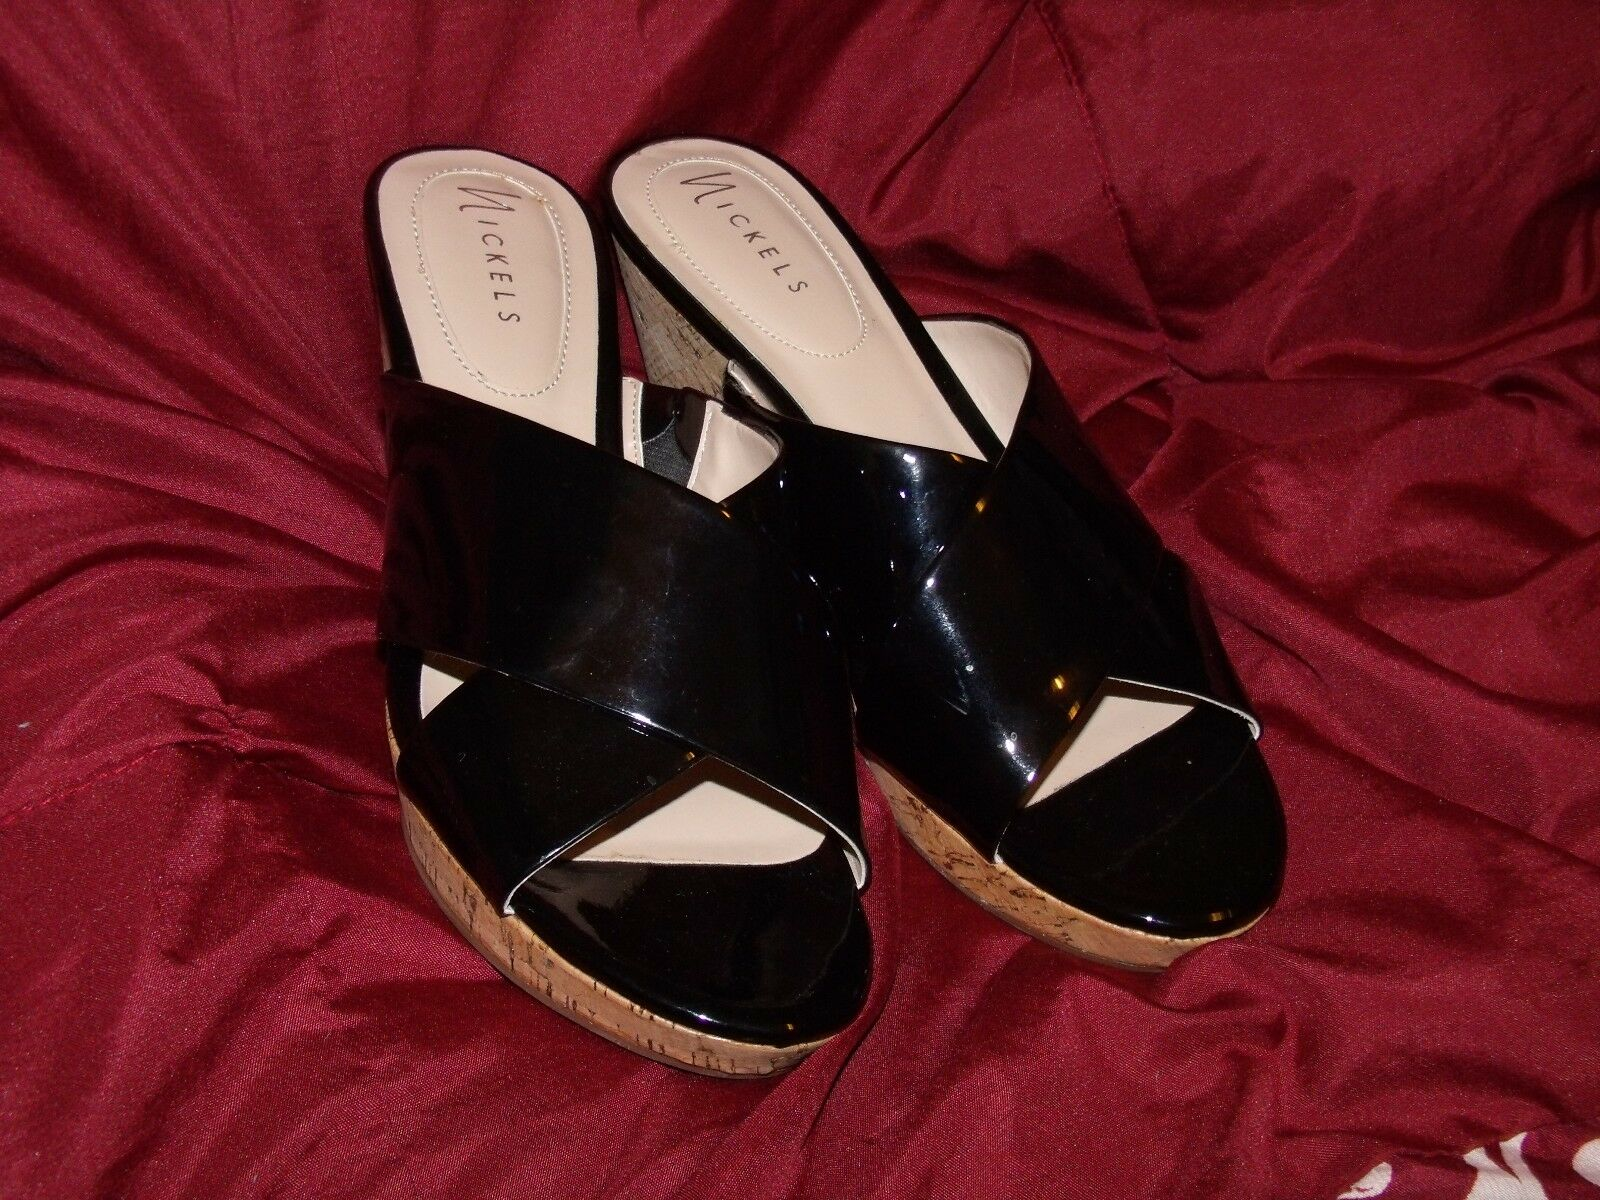 Nickels Shoes Solid Black Synthetic Open Toe Mules Wedge Heel Shoes Nickels 10 M Arlene 10M 031505